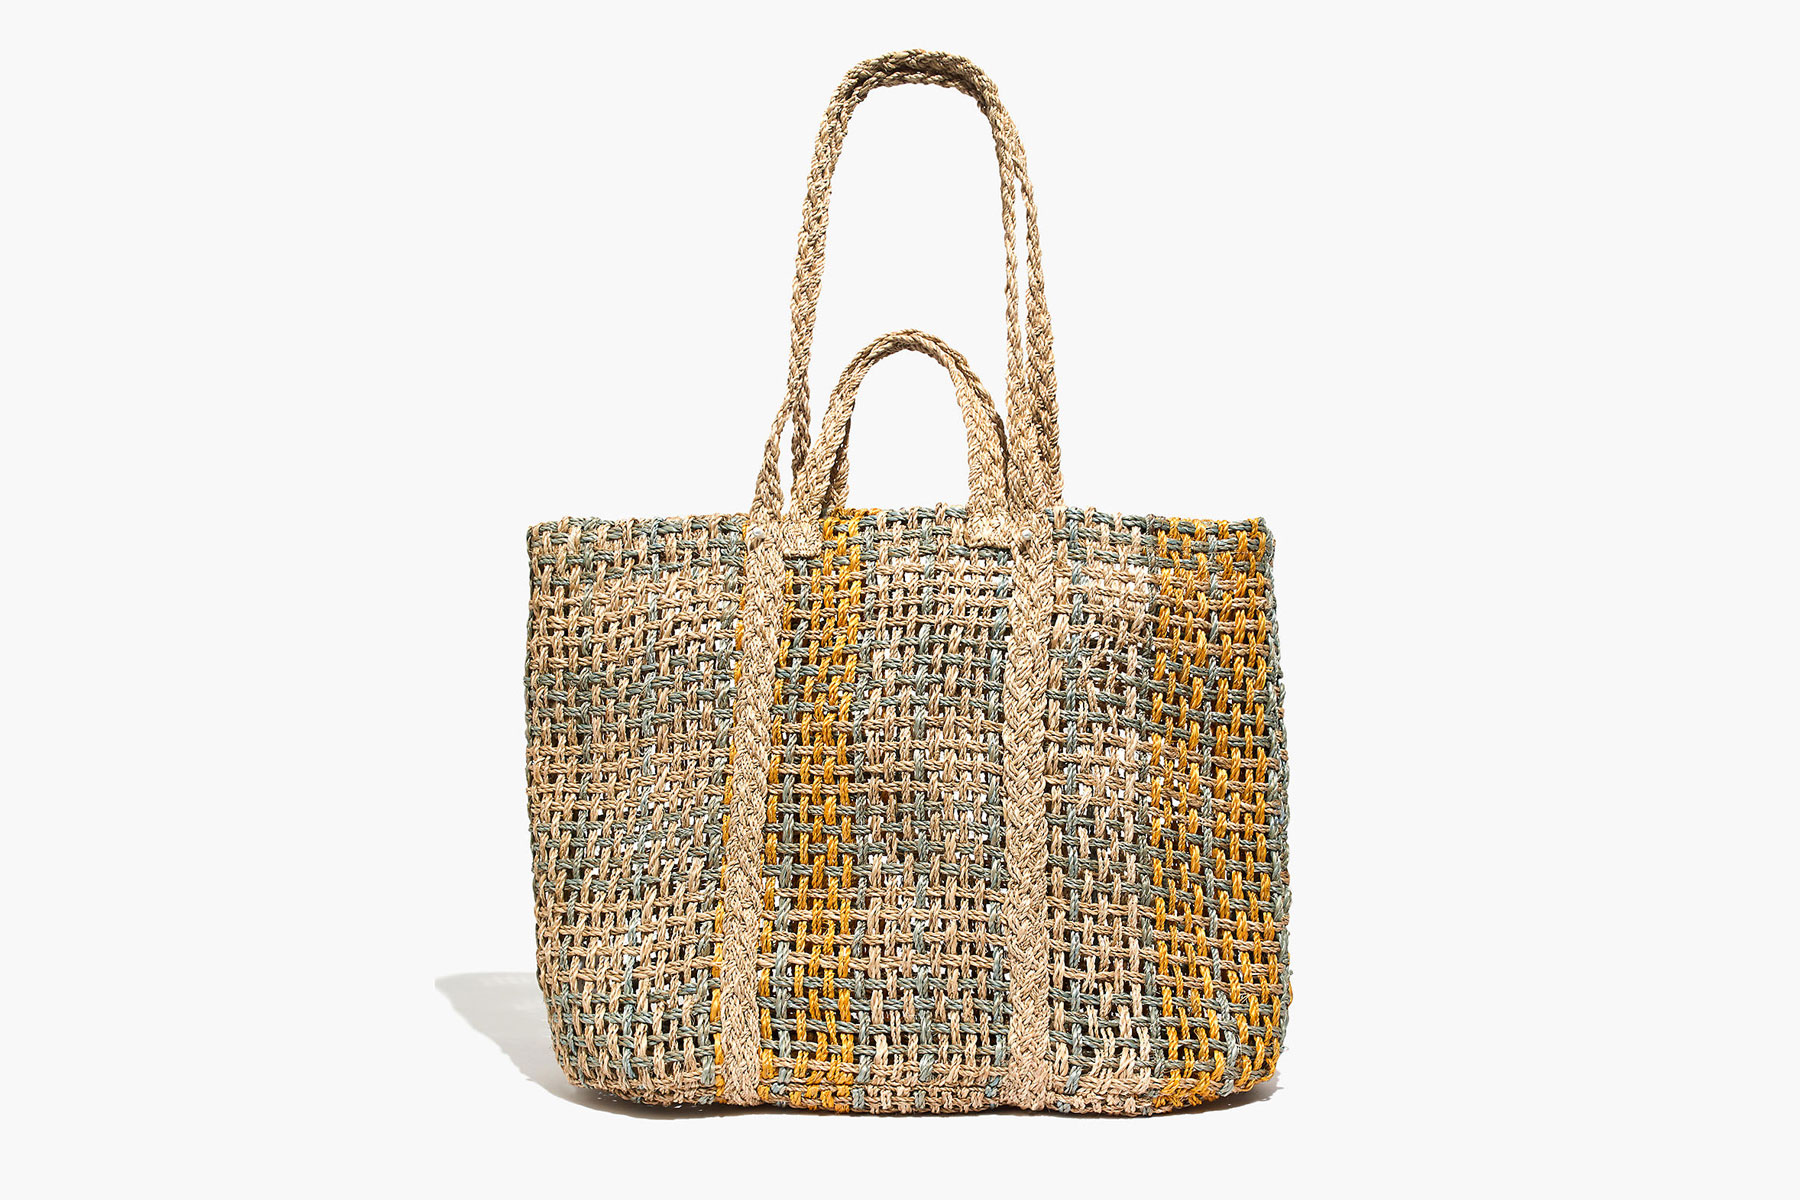 Madewell Straw Beach Tote Bag